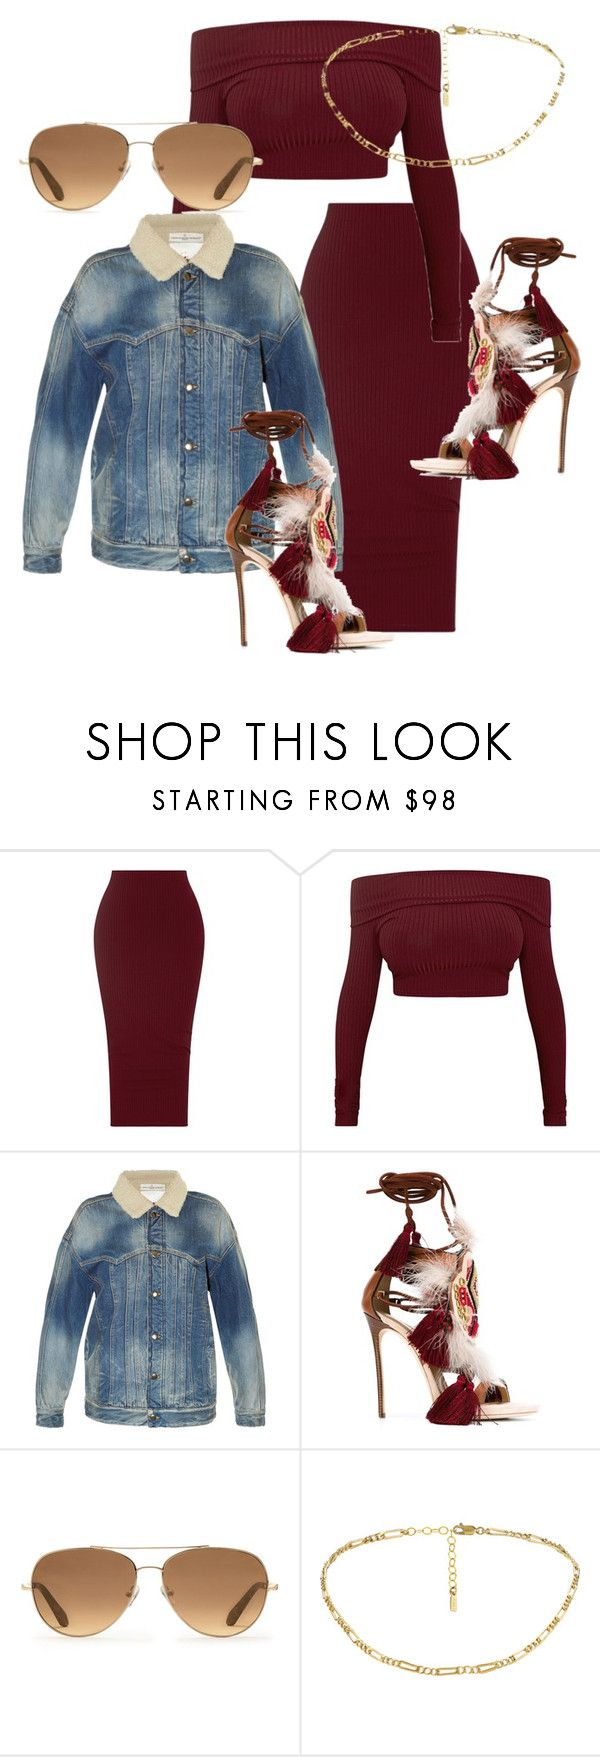 """""""mannequinxo x don't mess with my man .. nicki minaj"""" by xxxthebombshellfactoryxxx ❤ liked on Polyvore featuring Golden Goose, Dsquared2 and Stella & Dot"""